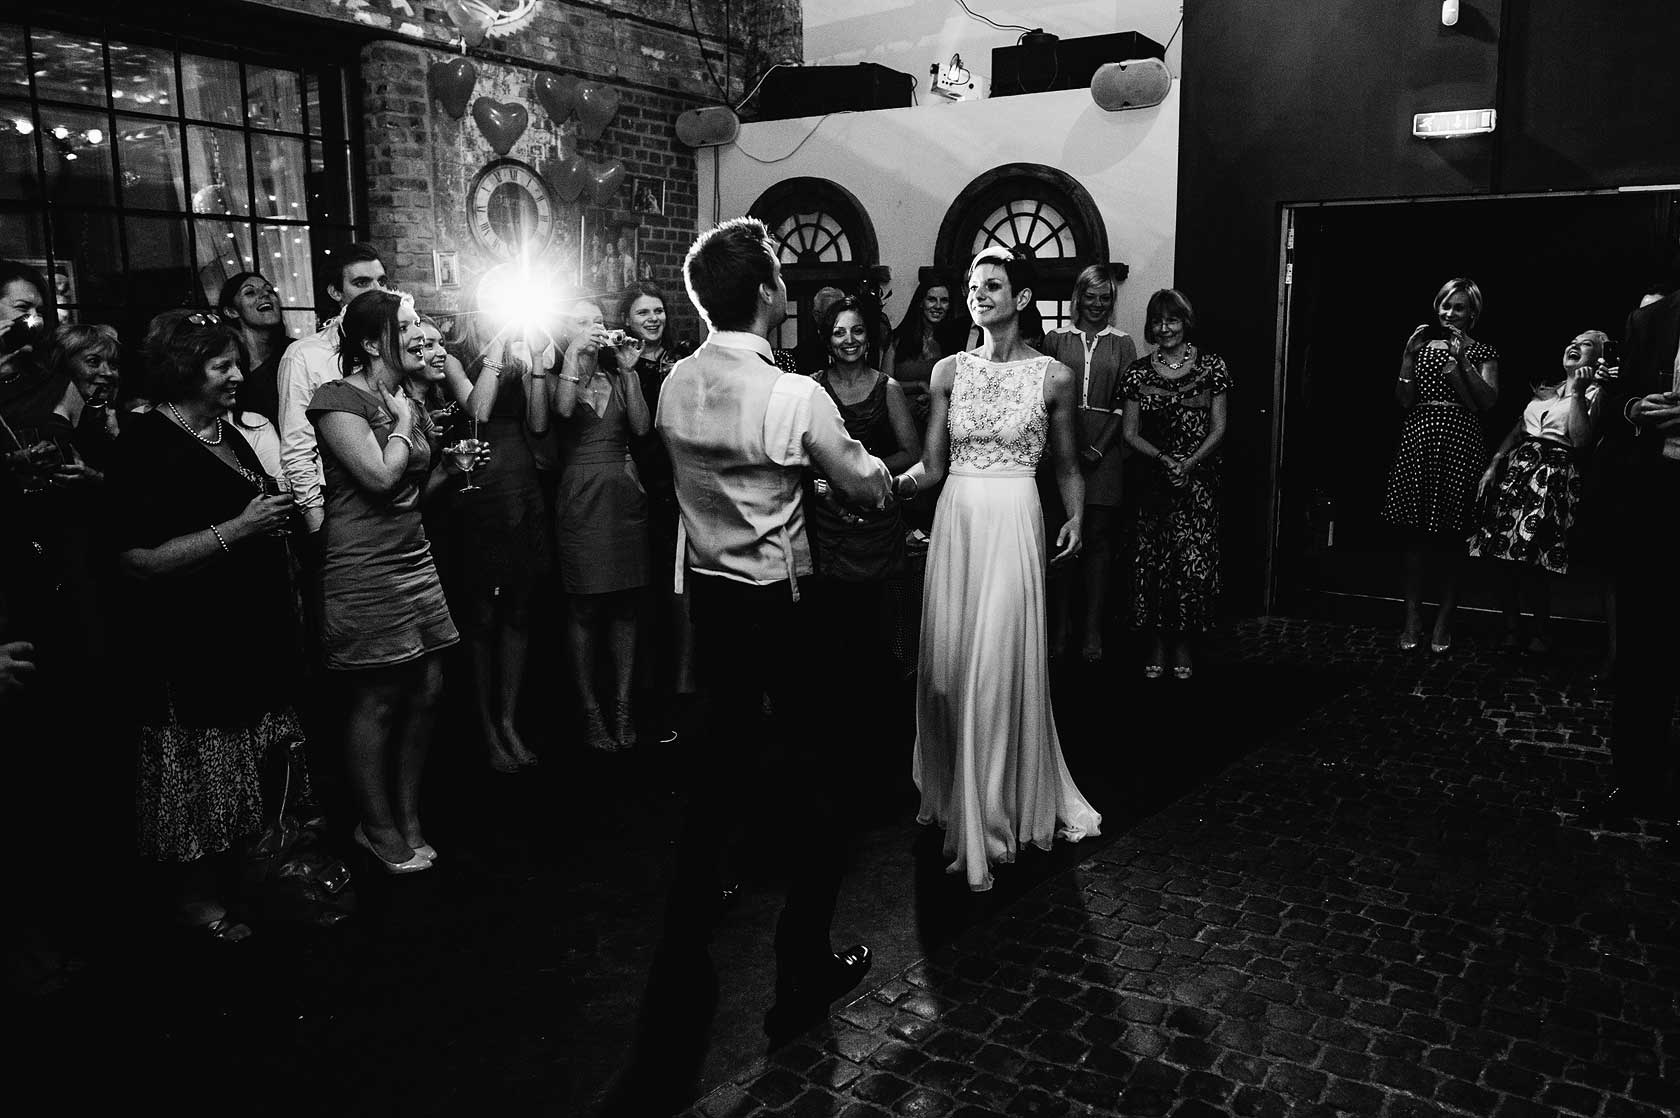 Reportage Wedding Photography at Islington Metalworks